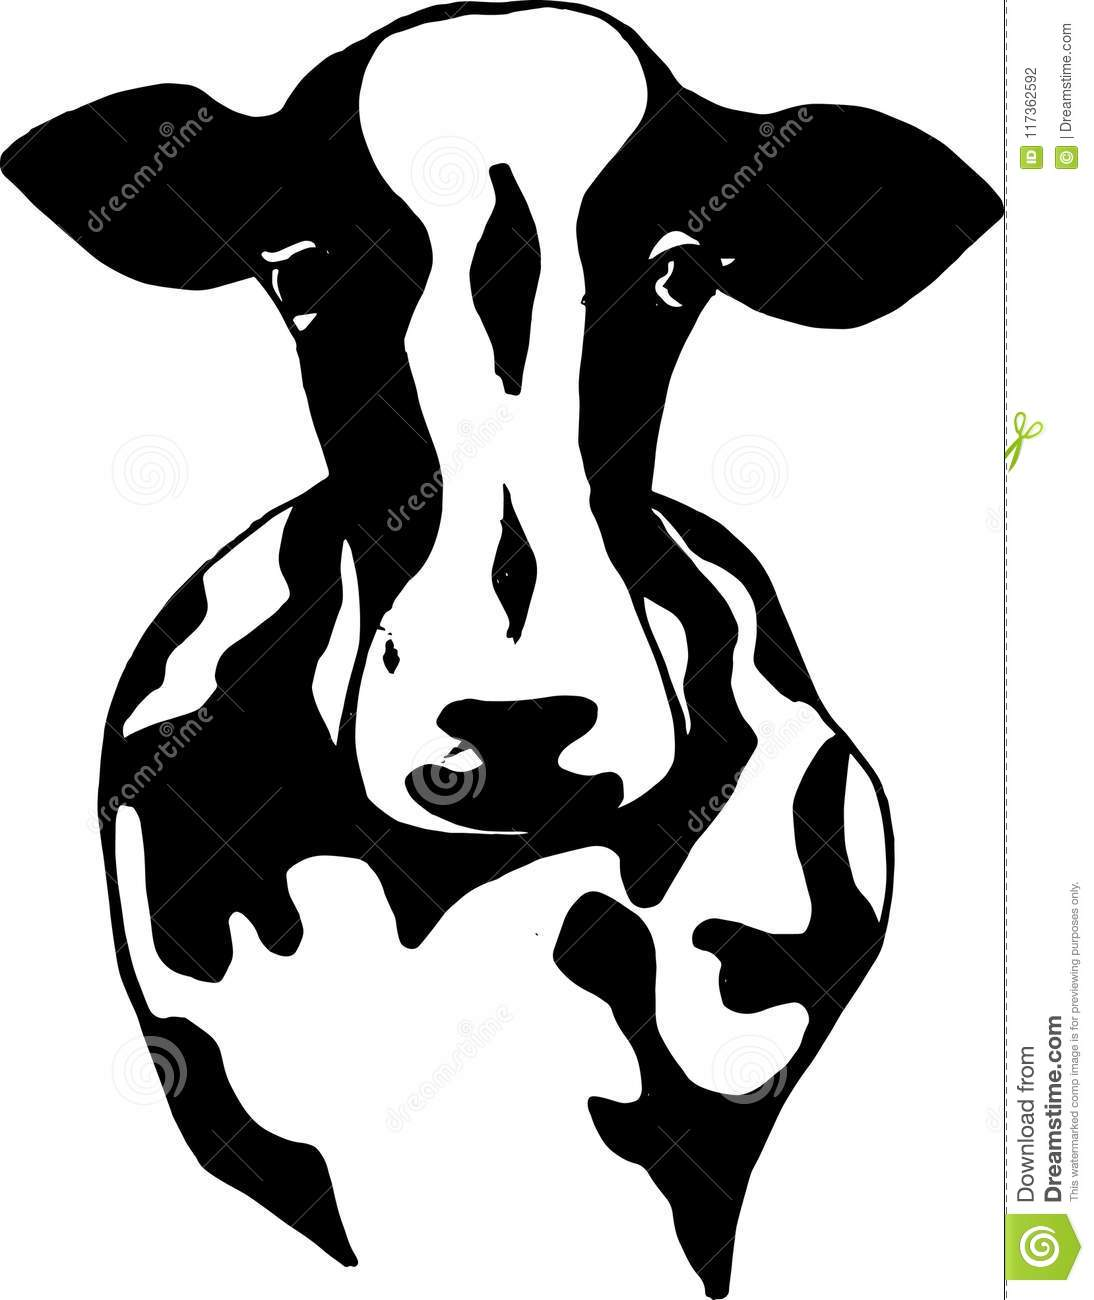 Black and white illustration of a sacred indian animal. Indian cow